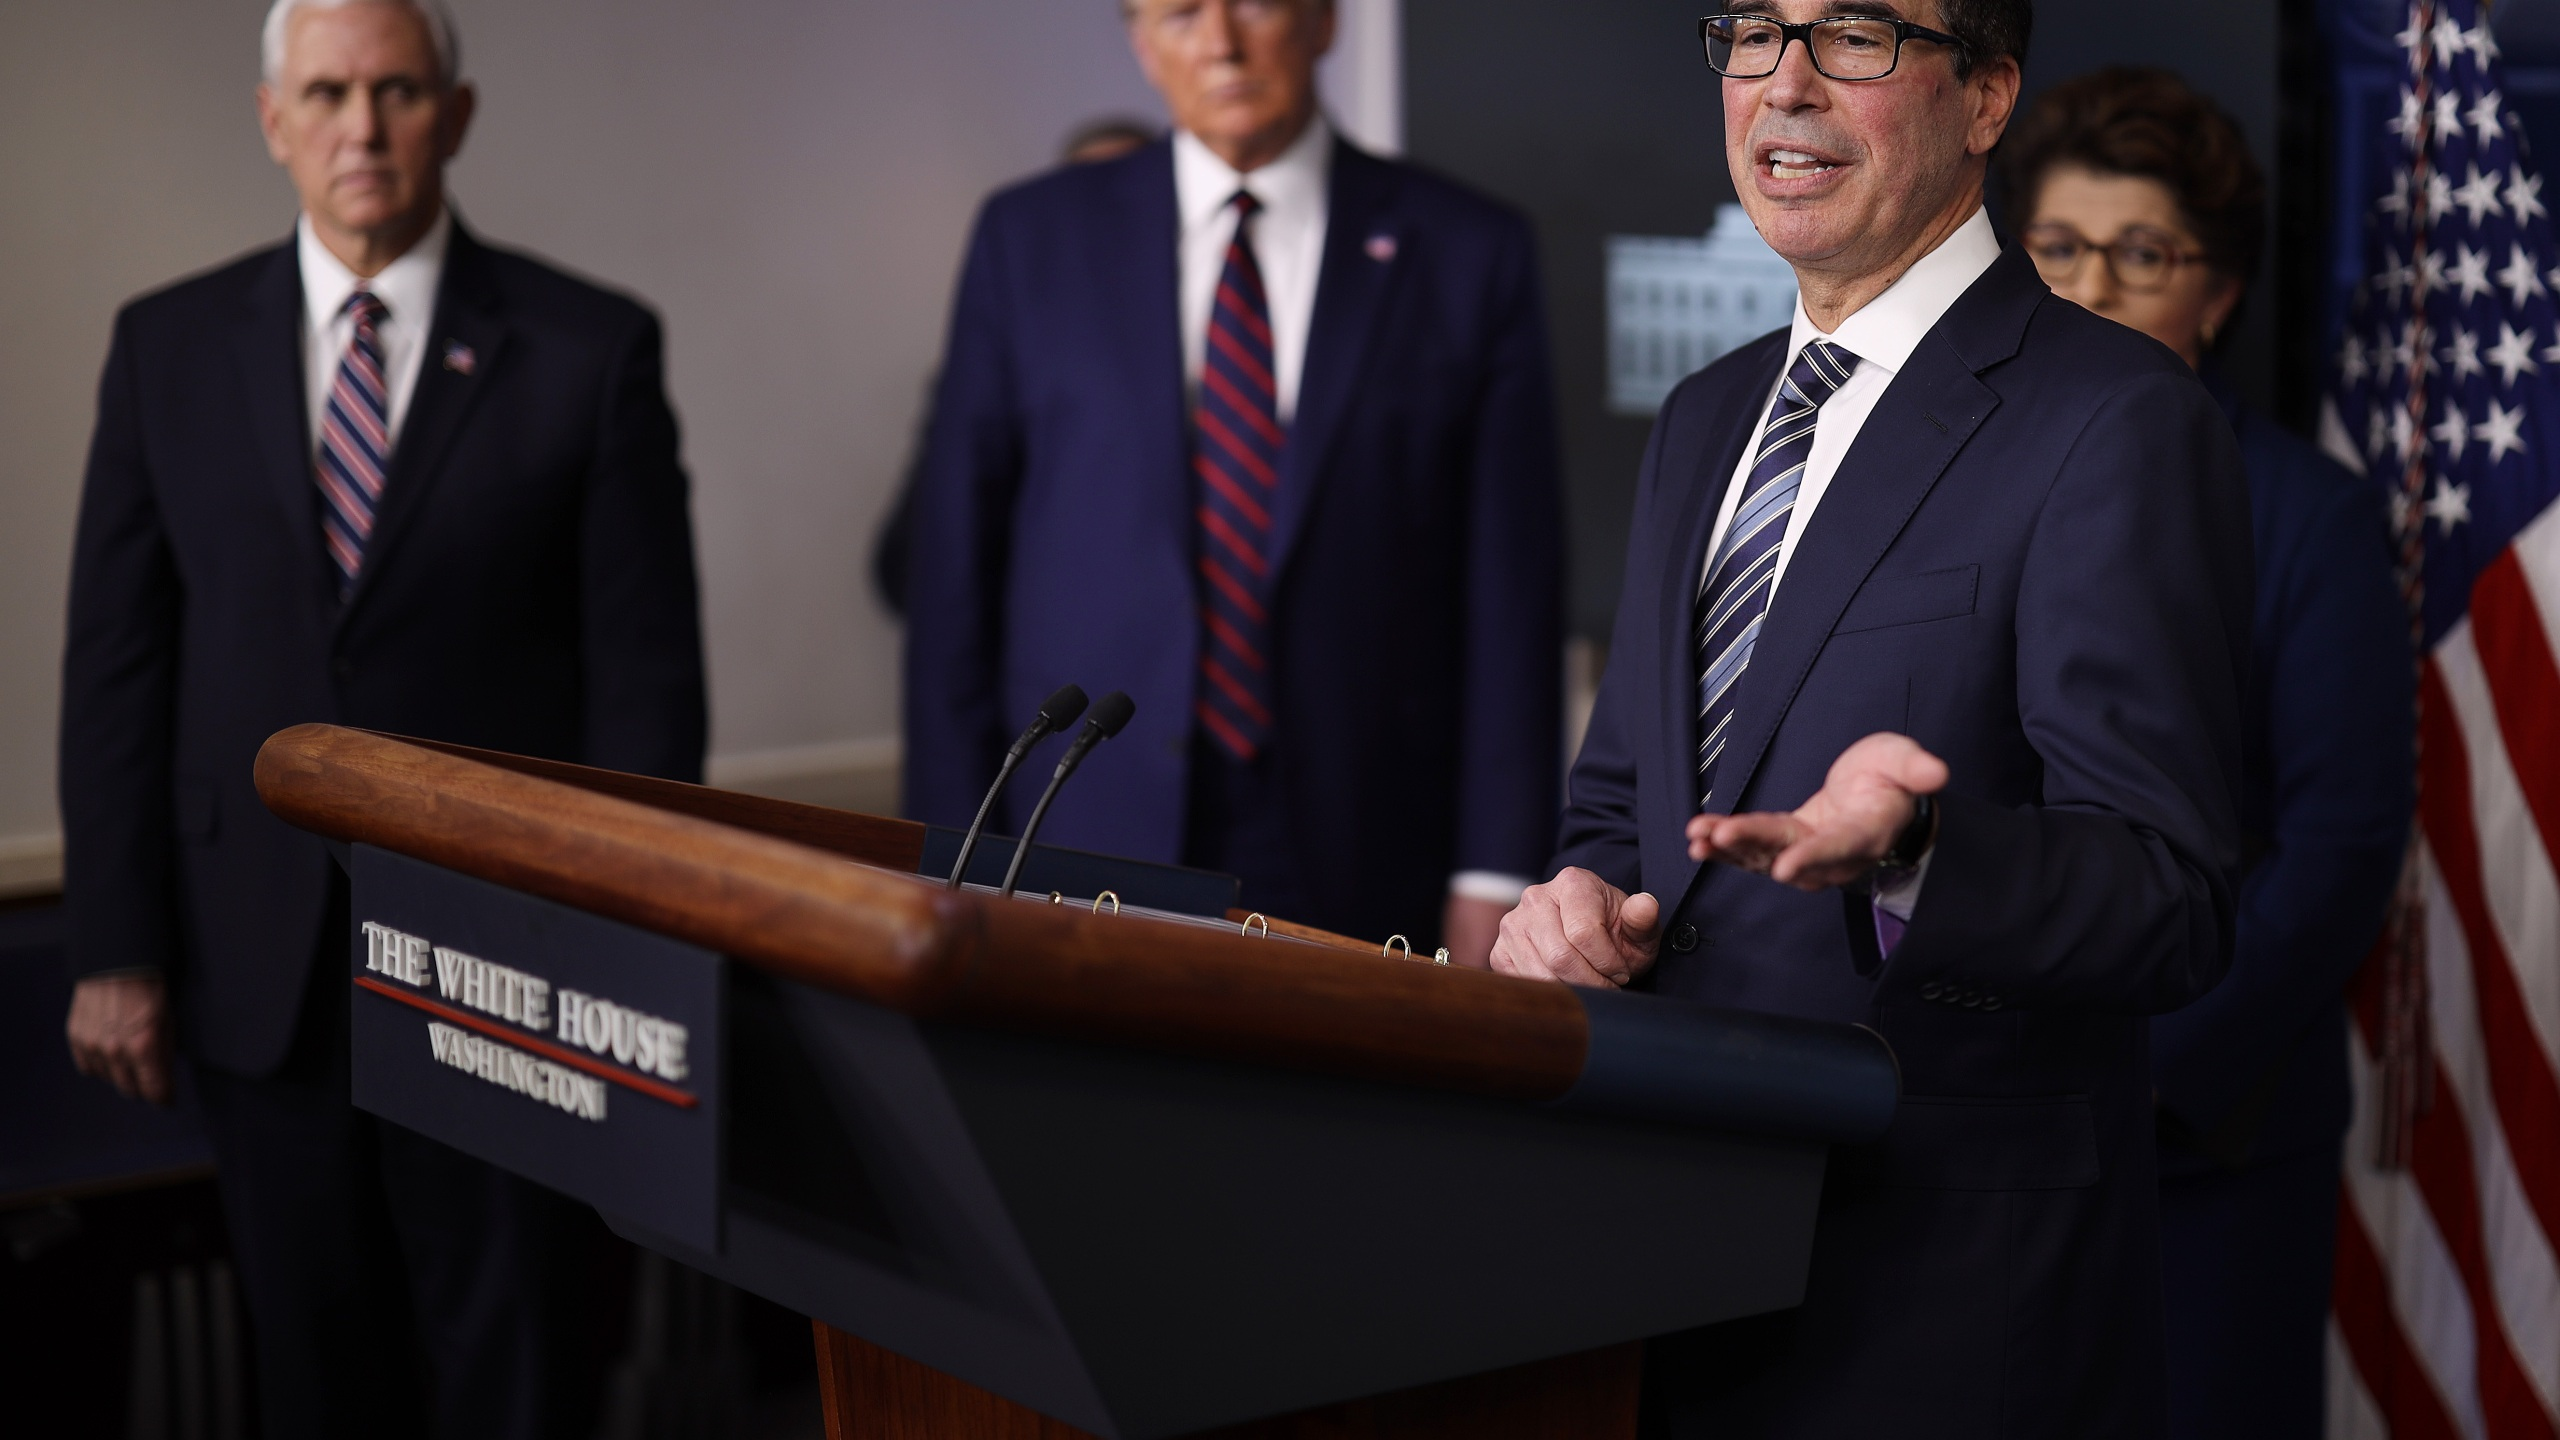 U.S. Treasury Secretary Steven Mnuchin speaks in the press briefing room with President Donald Trump, Vice President Mike Pence and Small Business Administrator Jovita Carranza during the Coronavirus Task Force briefing April 2, 2020, in Washington, D.C. (Win McNamee/Getty Images)